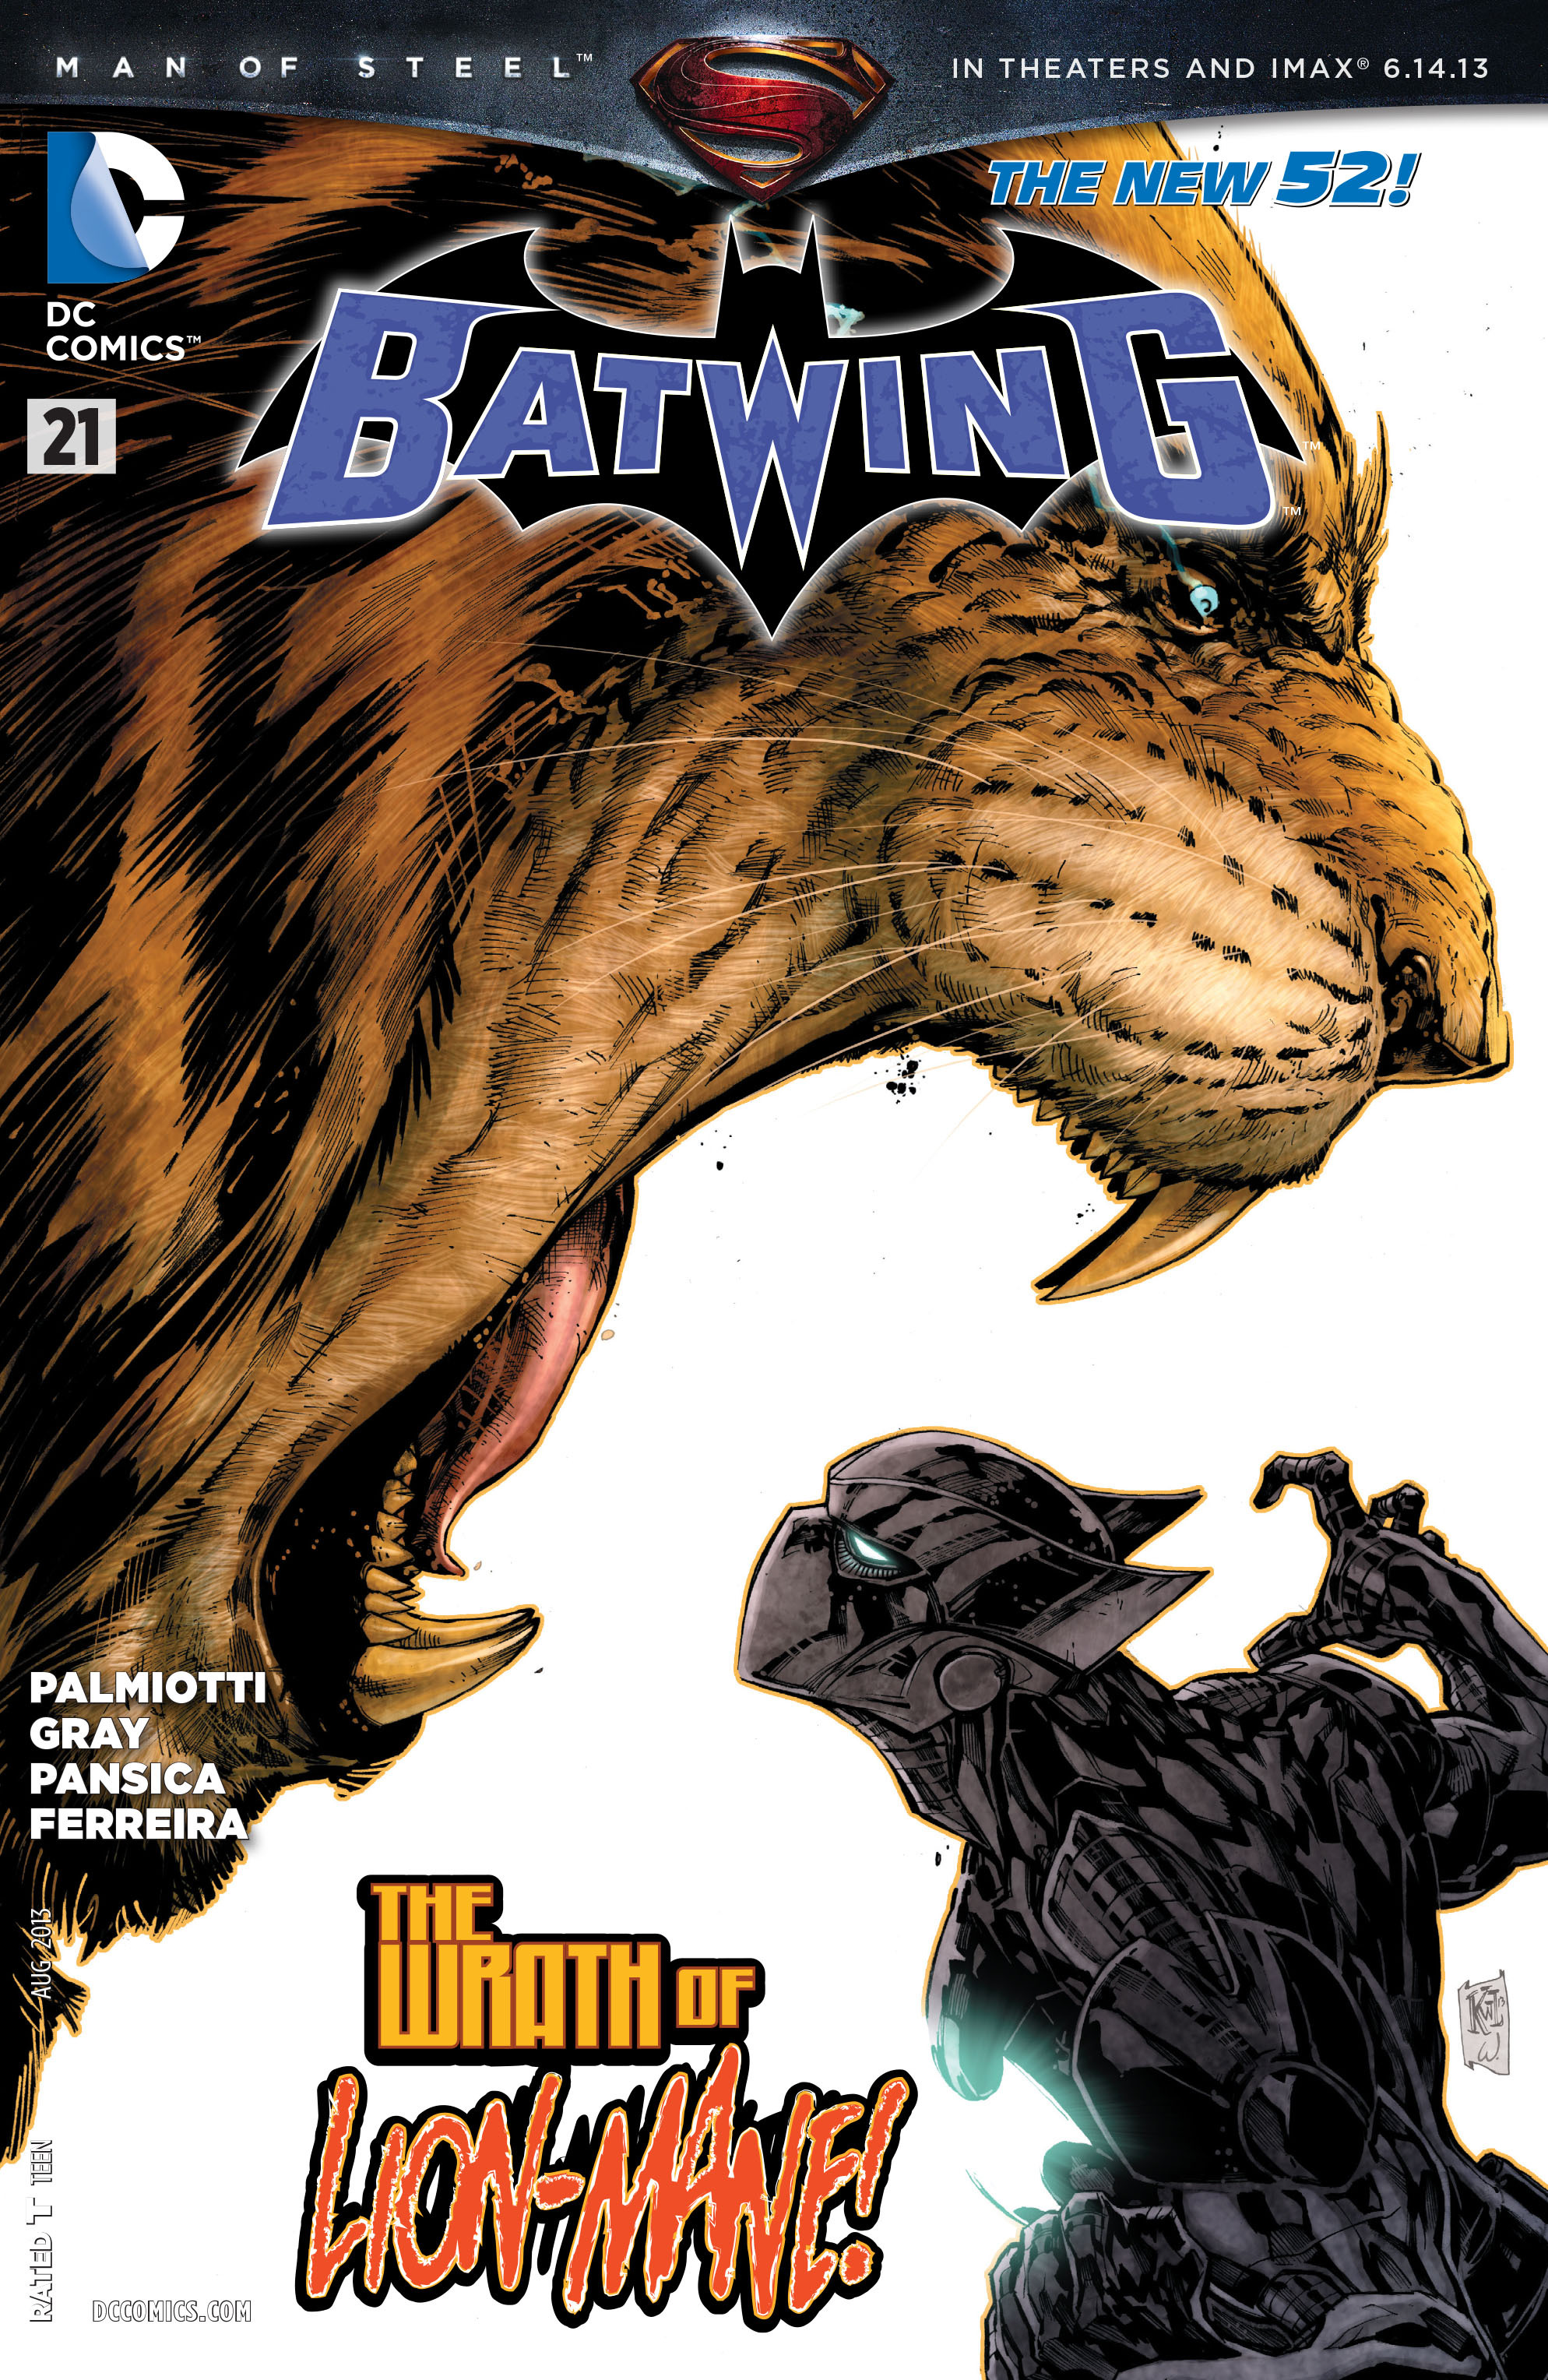 Batwing (Volume 1) Issue 21 | Batman Wiki | FANDOM powered ... Nightwing And Red Robin